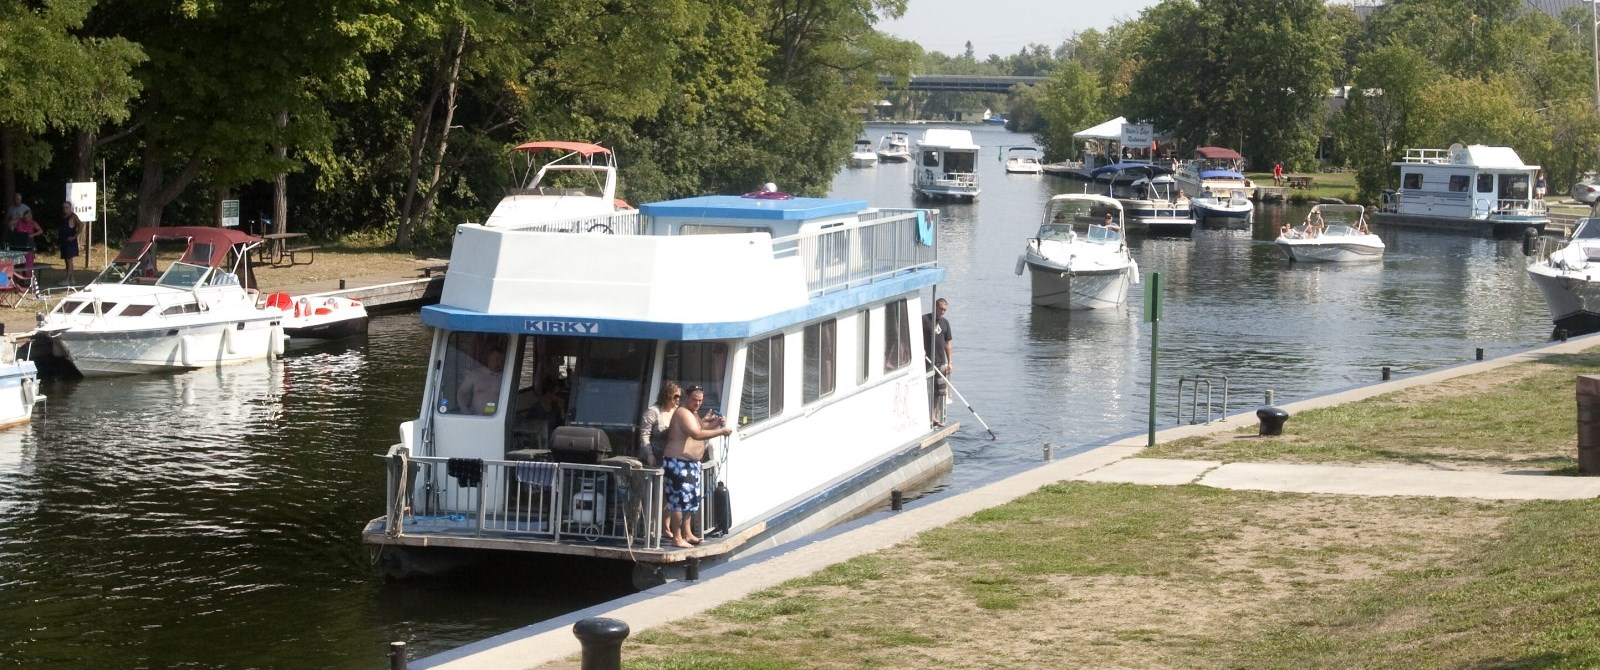 boats in the locks on the trent severn waterway